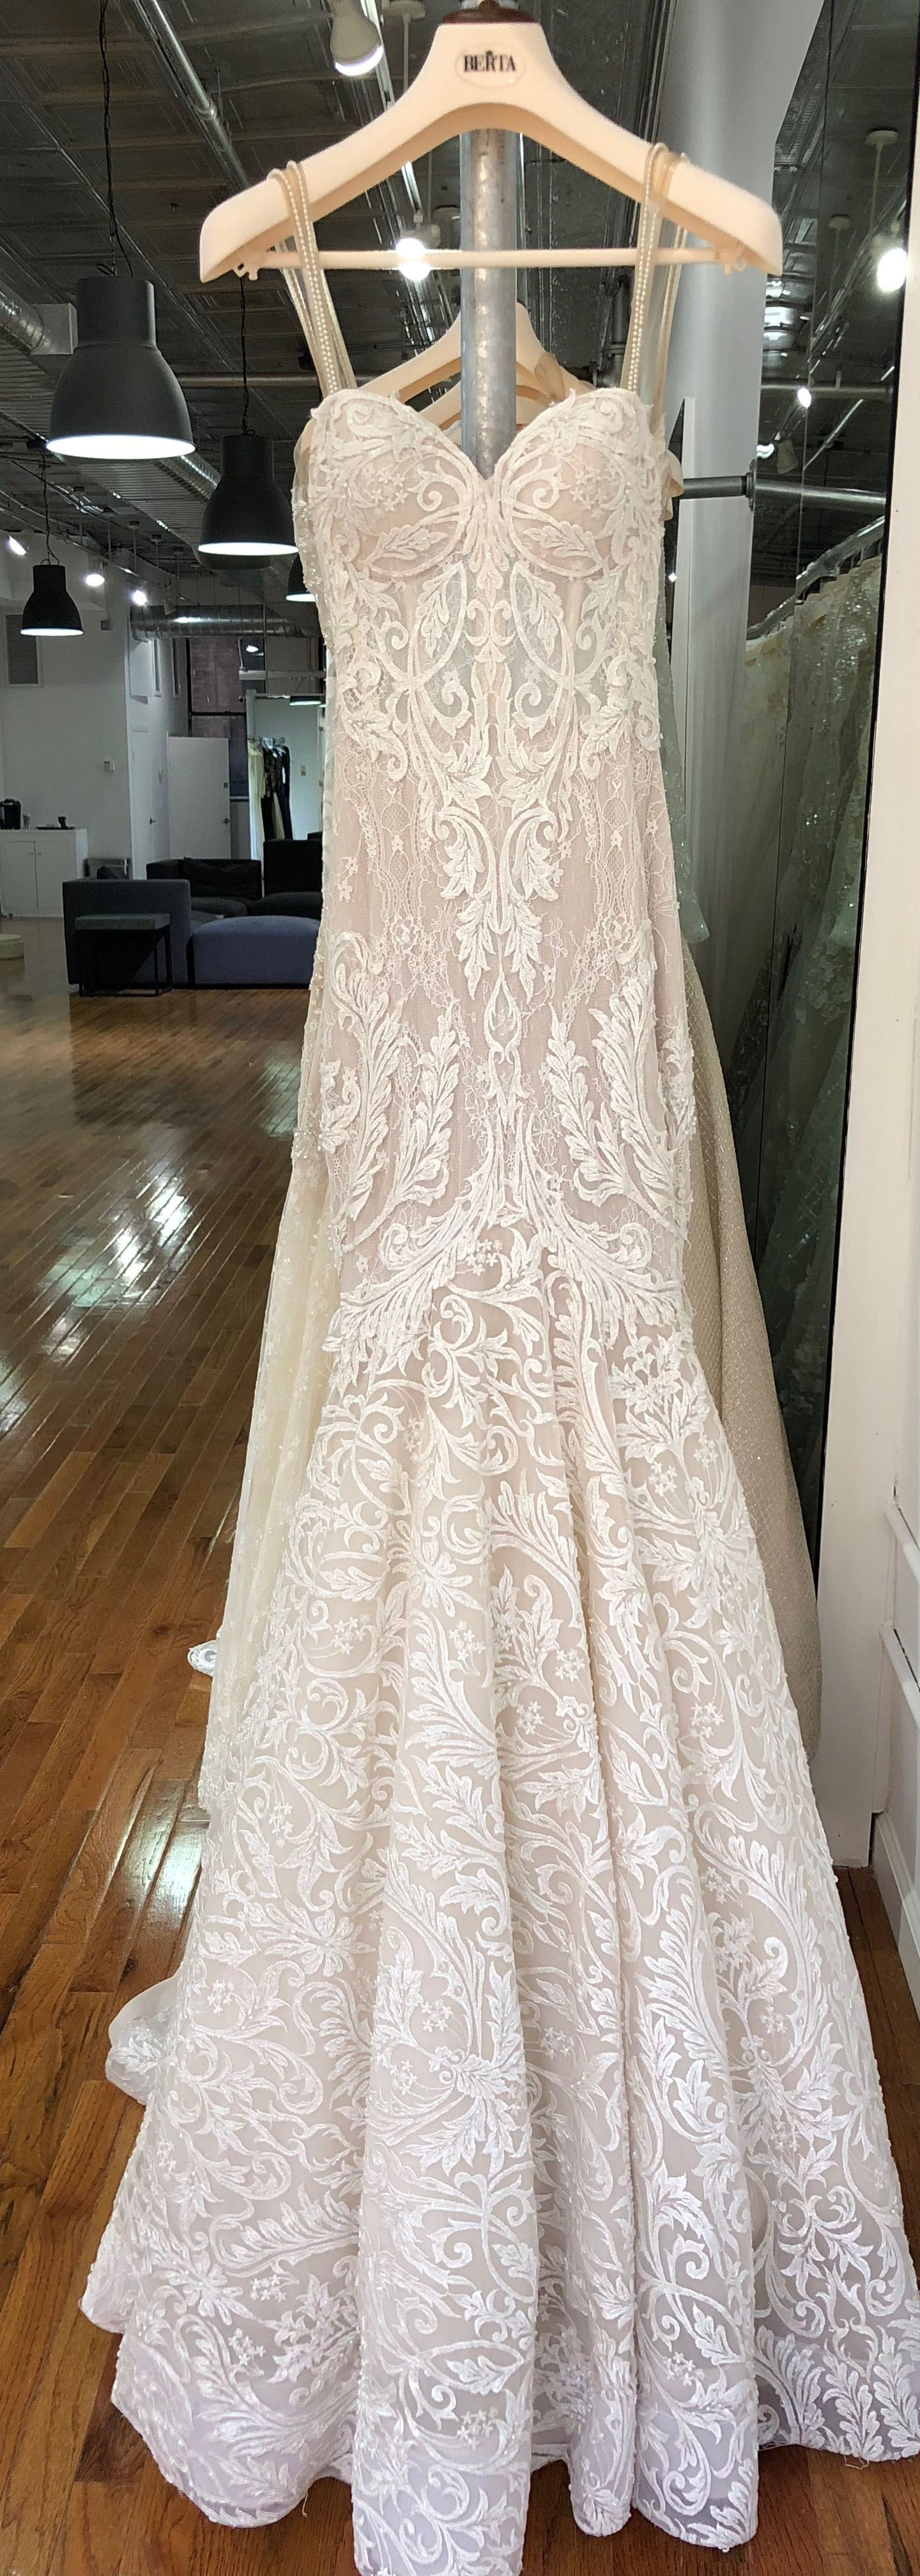 Iconic Berta Style 15 110 Available At Our Nyc Store For Special Off The Rack Prices 3 Dream Wedding Dresses Wedding Dresses For Girls Wedding Dresses